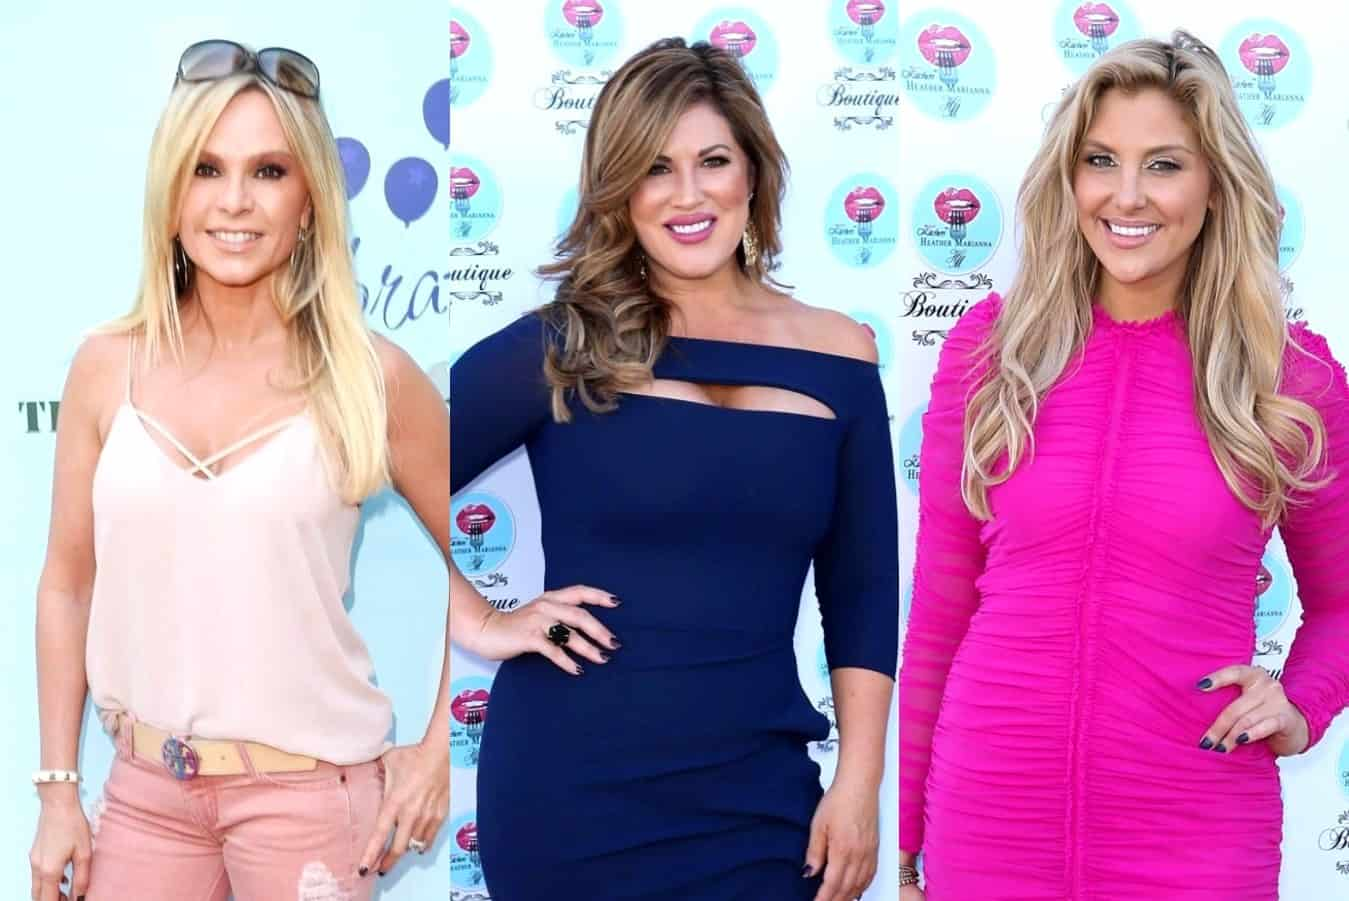 RHOC's Tamra Judge Accuses Emily Simpson of Trying to Get Dirt on Gina Kirschenheiter, Slams Her as 'Manipulative' and Says She Plays 'Victim'